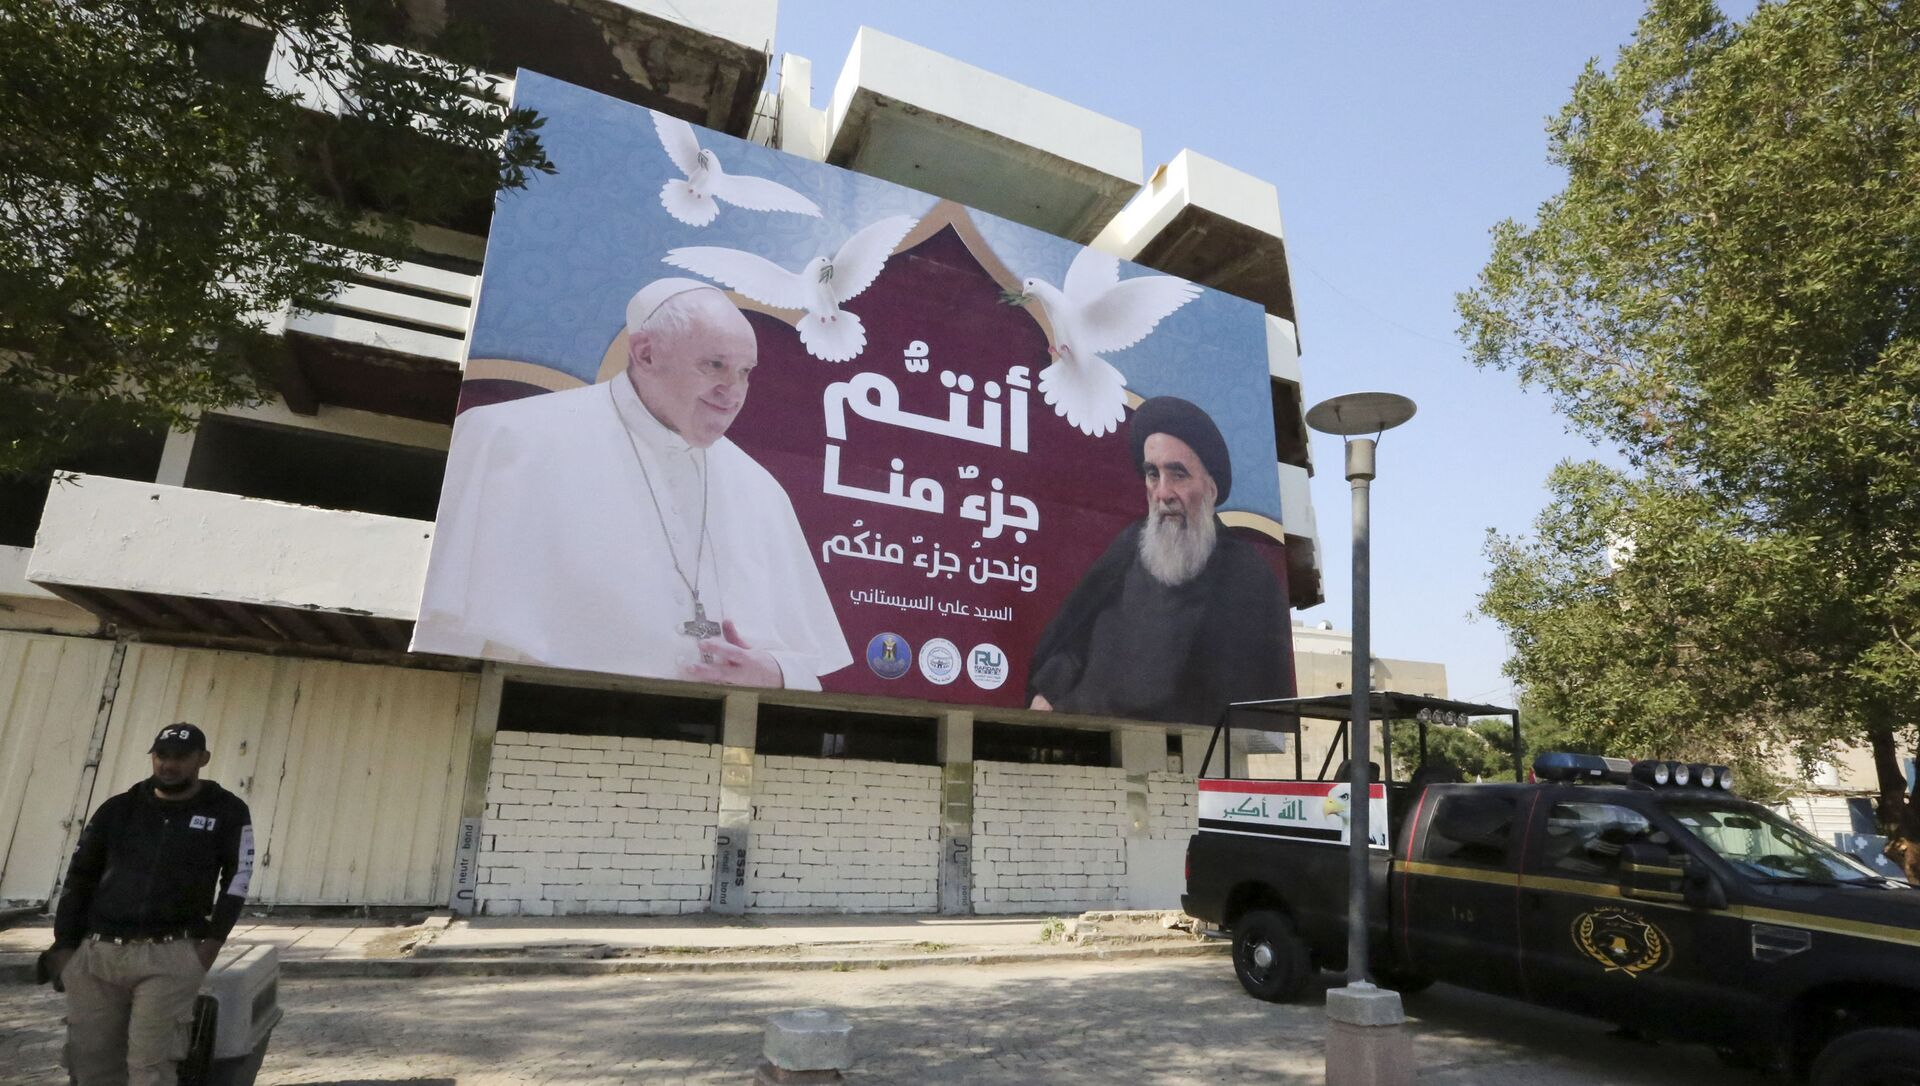 A giant billboard bears portraits of Pope Francis and Grand Ayatollah Ali Sistani in Baghdad on March 3, 2021 - Sputnik France, 1920, 06.03.2021